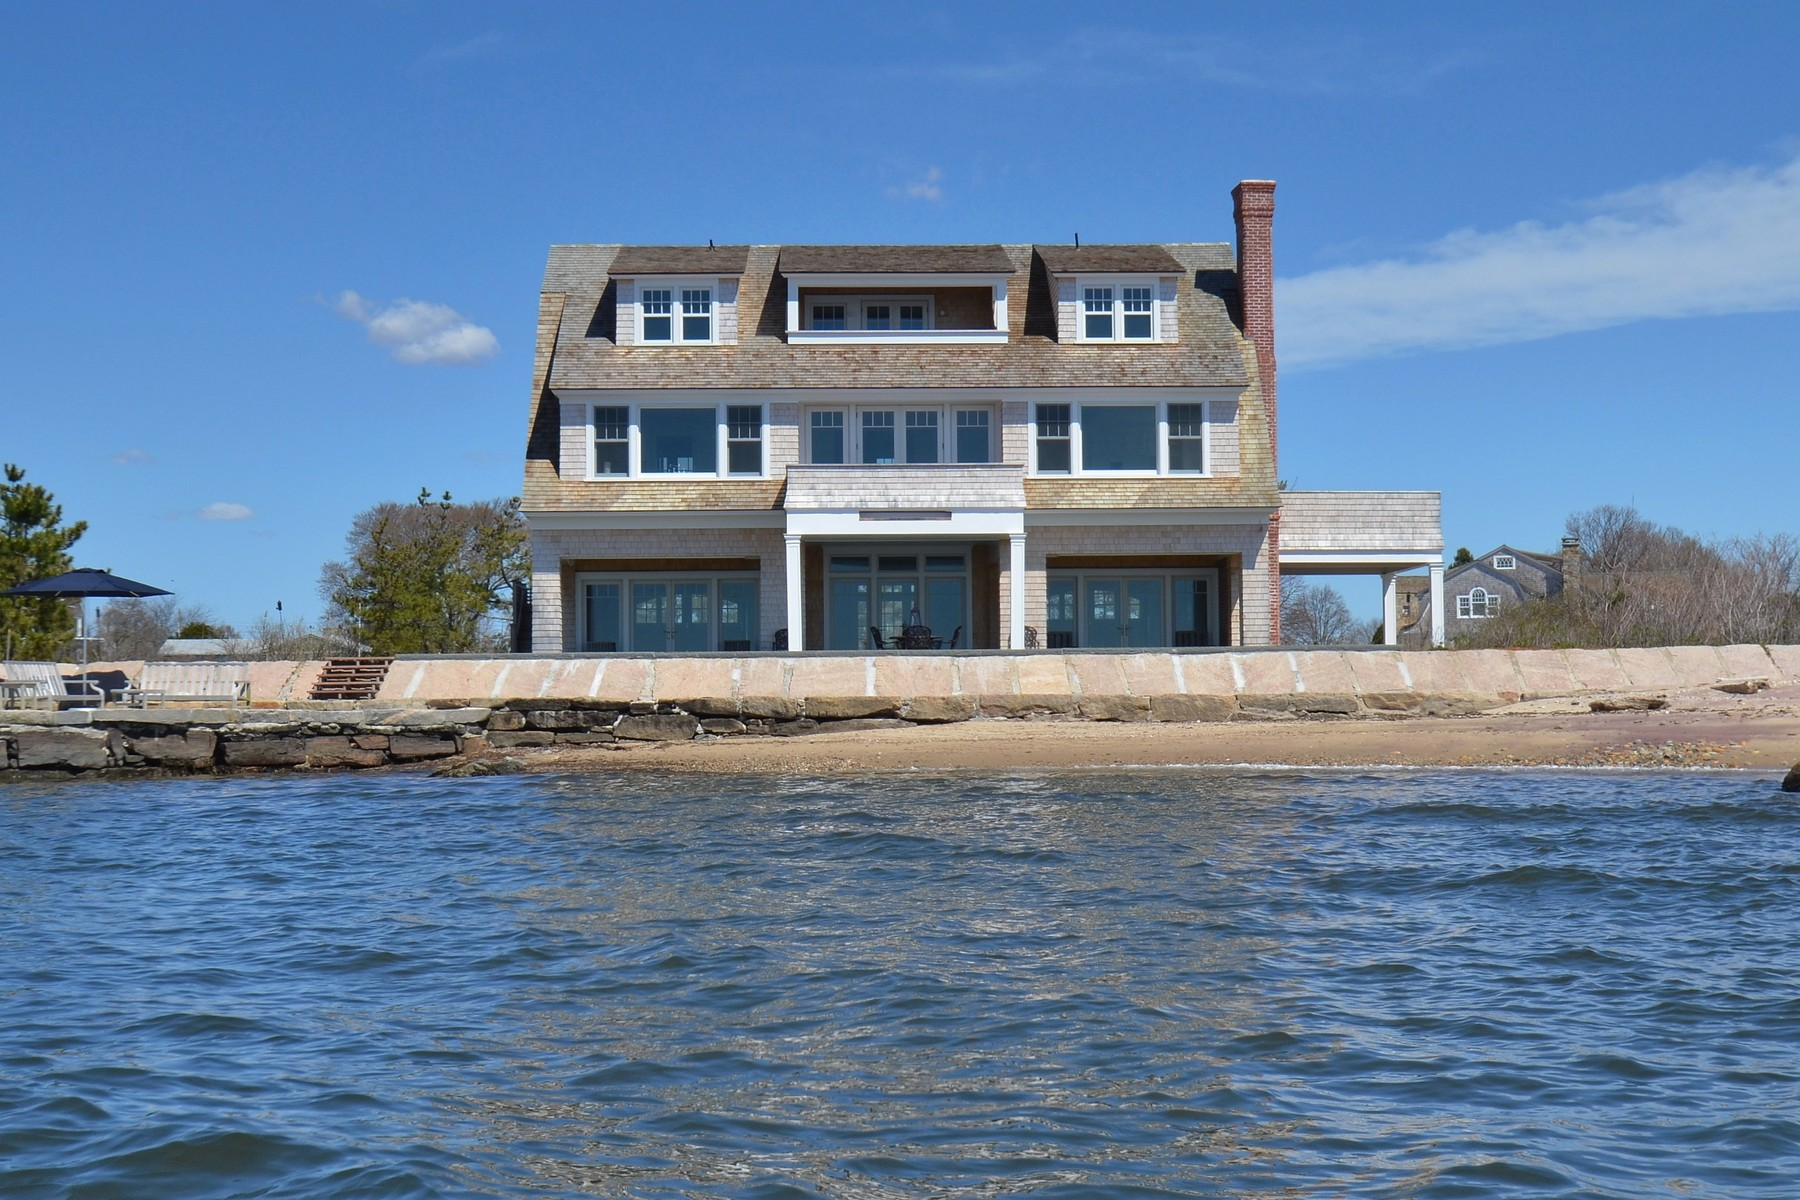 独户住宅 为 销售 在 Waterfront Paradise 6 Mohegan Ave Old Saybrook, 康涅狄格州 06475 美国